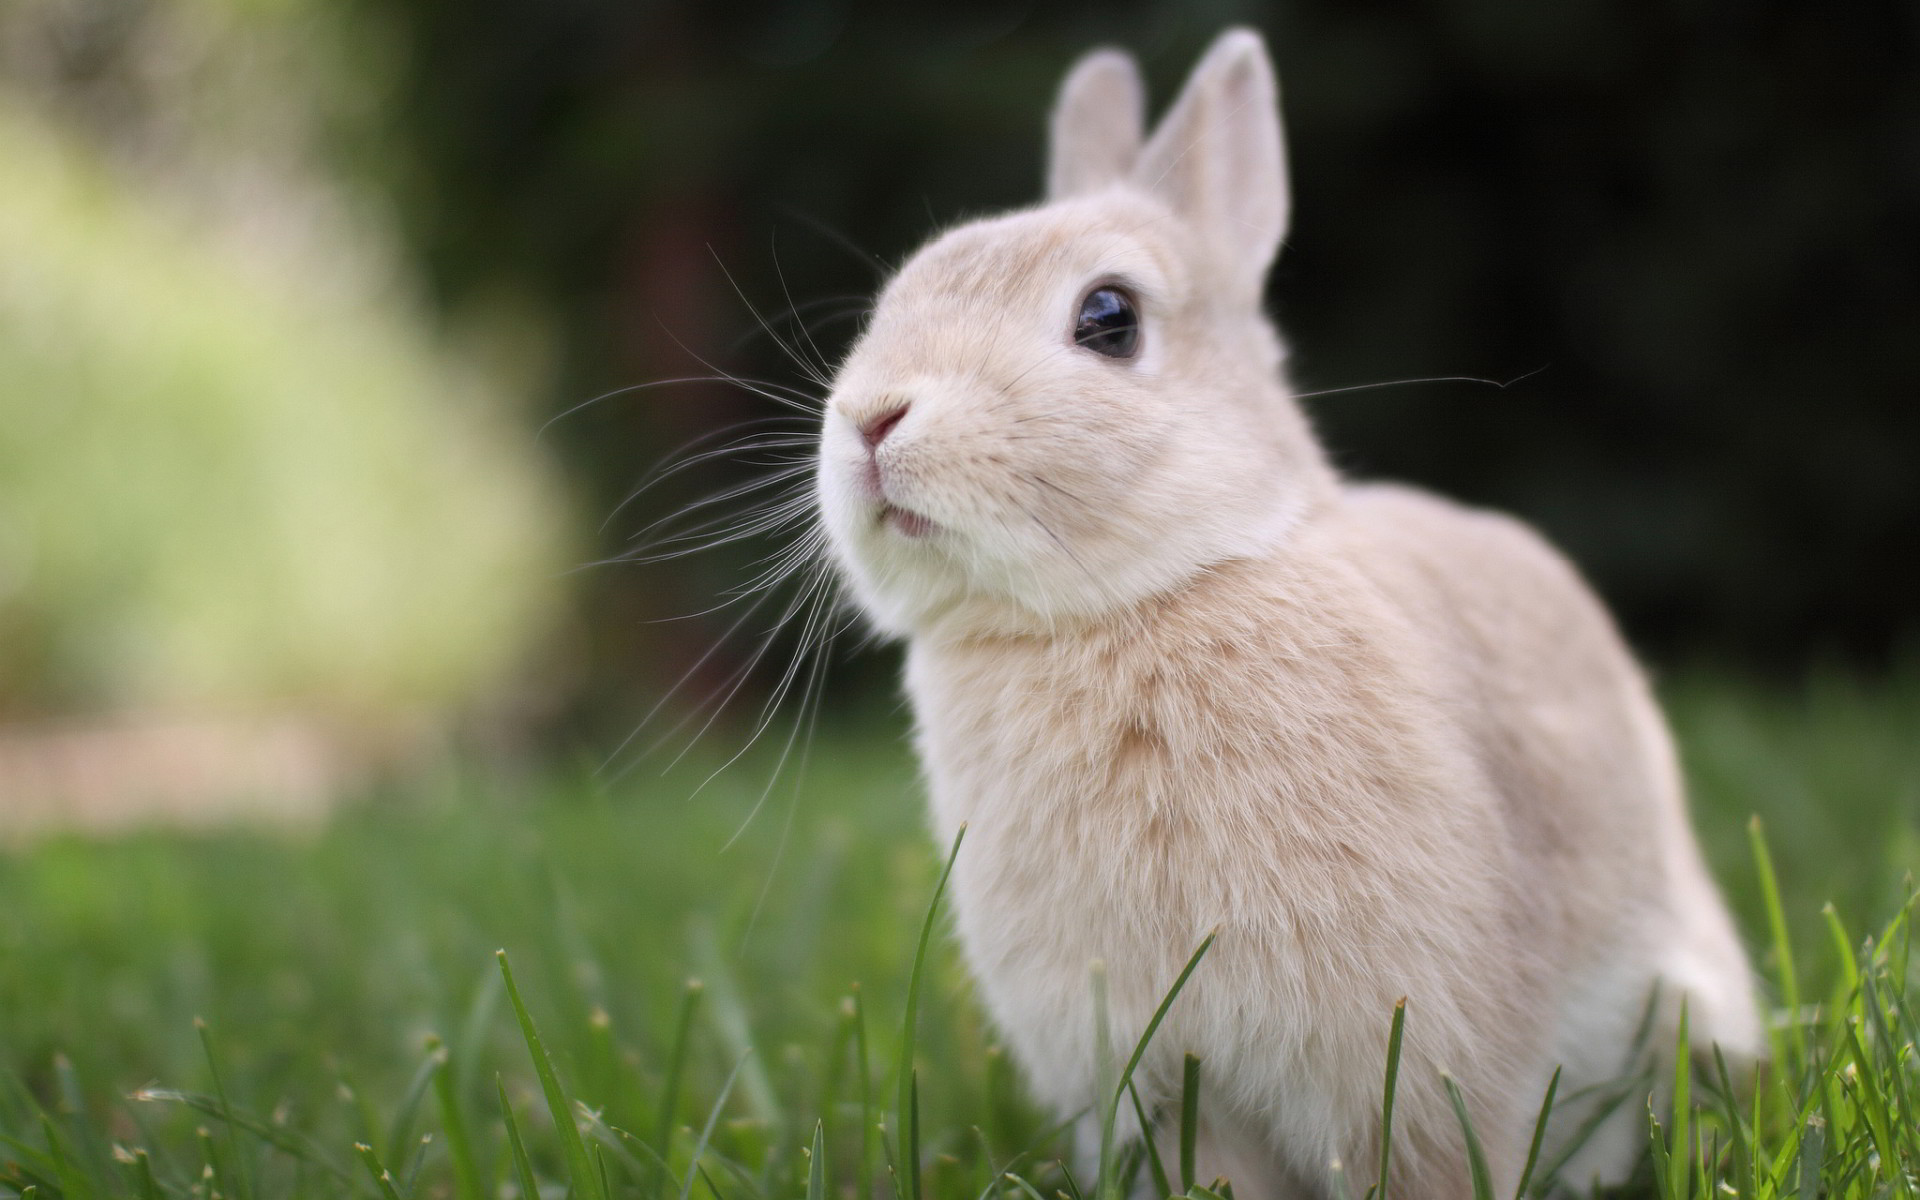 Cute Rabbit Wallpaper Free Download Bunny Wallpapers High Quality Download Free